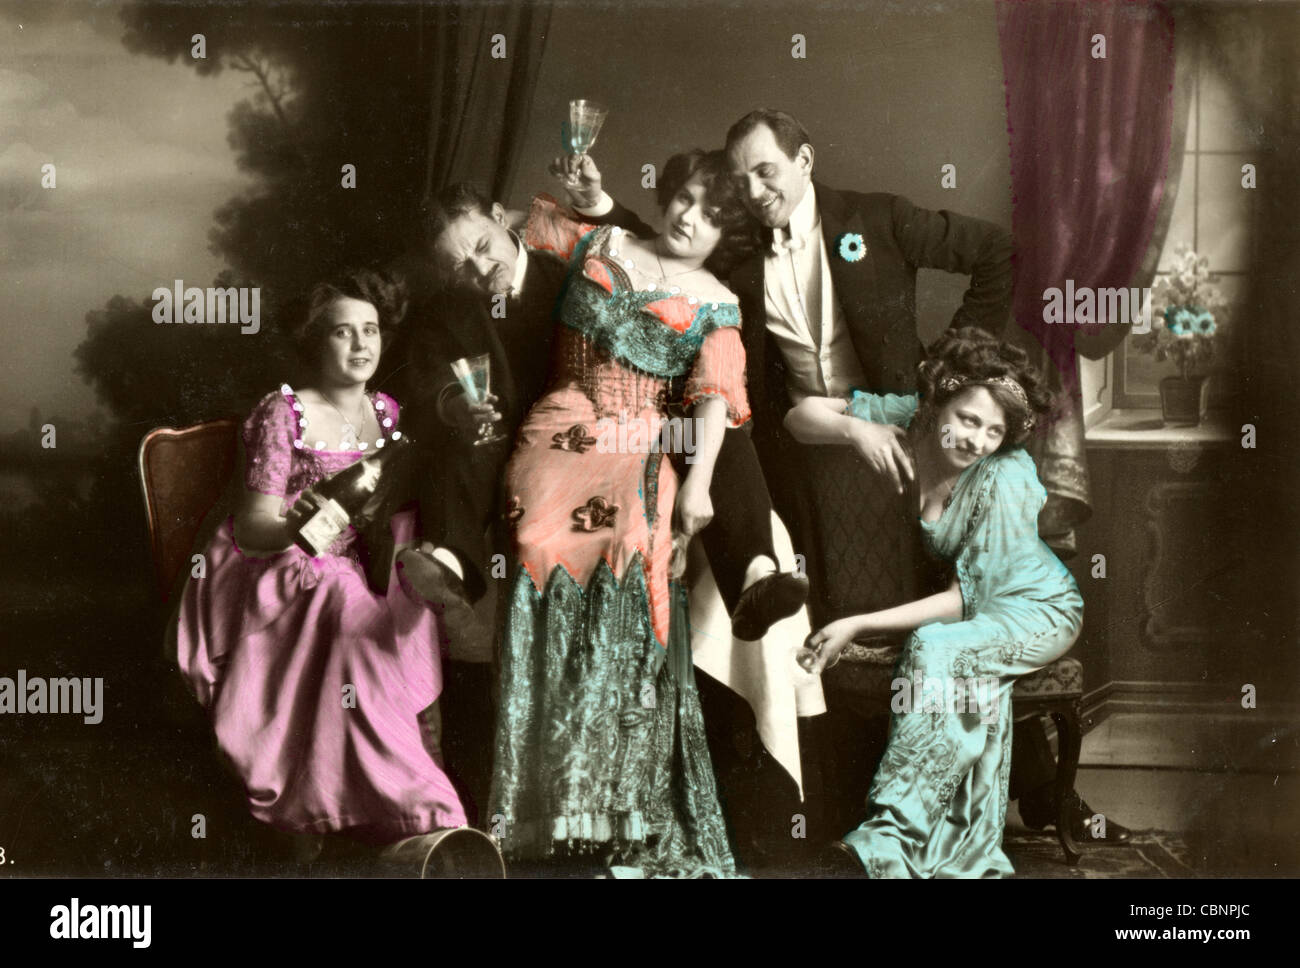 Five Wild & Crazy Society Partygoers - Stock Image